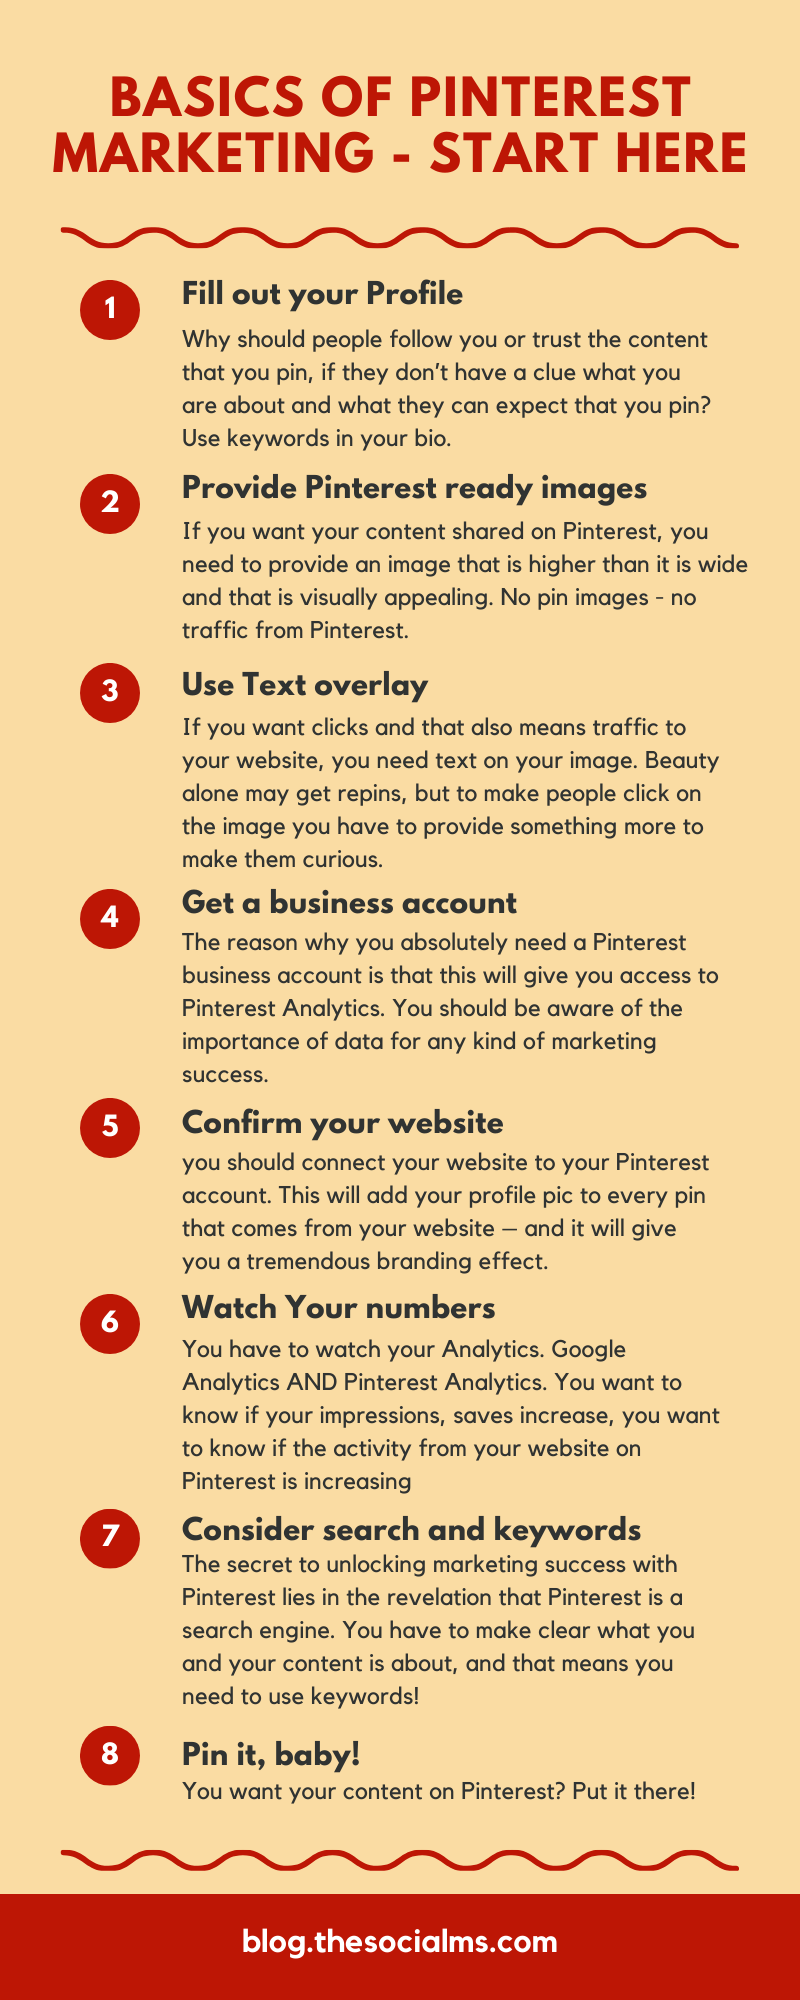 There are some basics you need to do on Pinterest or you will not see any kind of measurable results. Here are 10 things you need to do before you can expect your Pinterest marketing to take off. To get traffic from Pinterest, get these right #pinterest #pinteresttips #pinterestmarketing #pintereststrategy #socialmedia #socialmediatips #blogtraffic #trafficgeneration